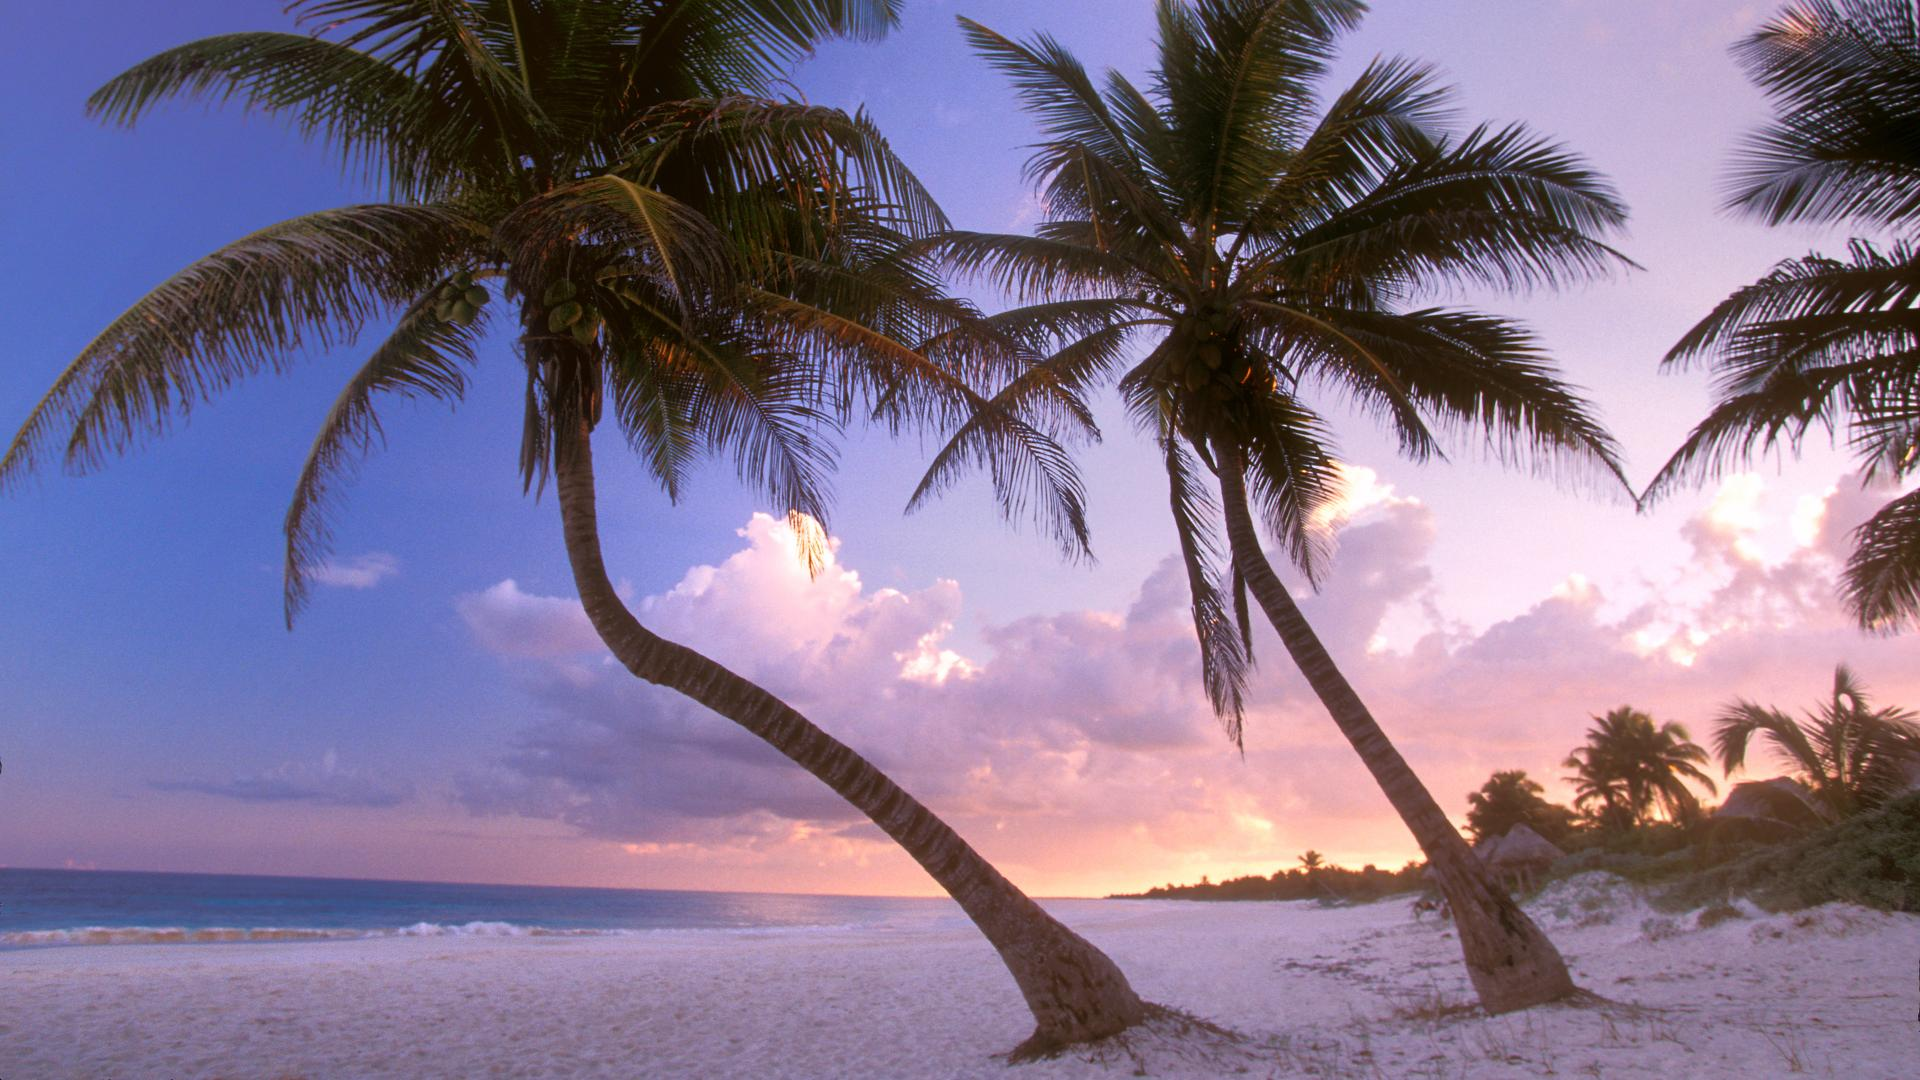 sultry background cool wallpapers mexico sways backgrounds 1920x1080